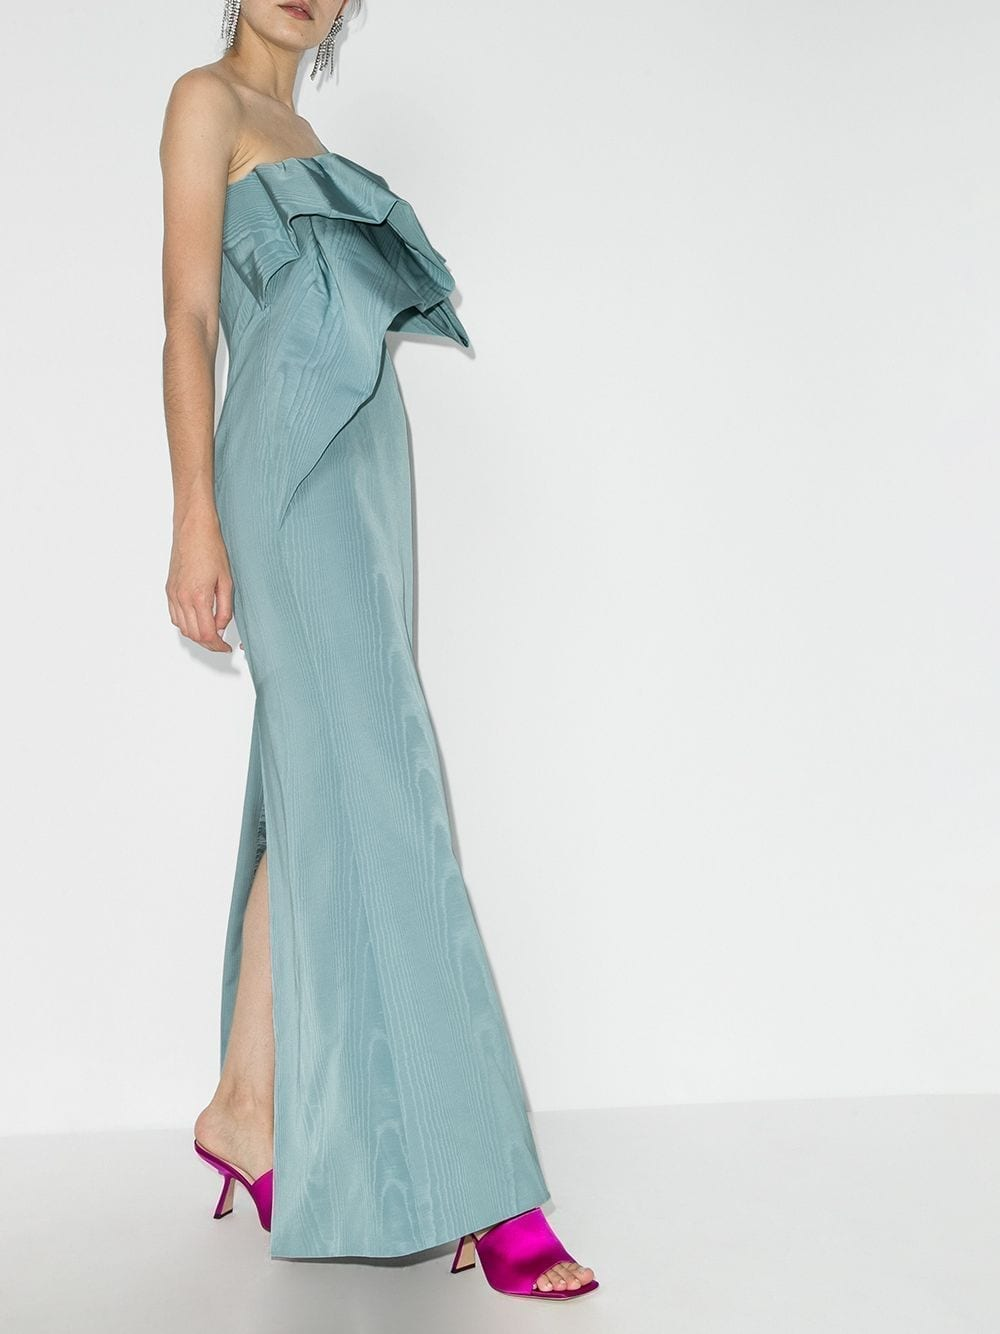 OSCAR DE LA RENTA One Shoulder Bow Front Gown